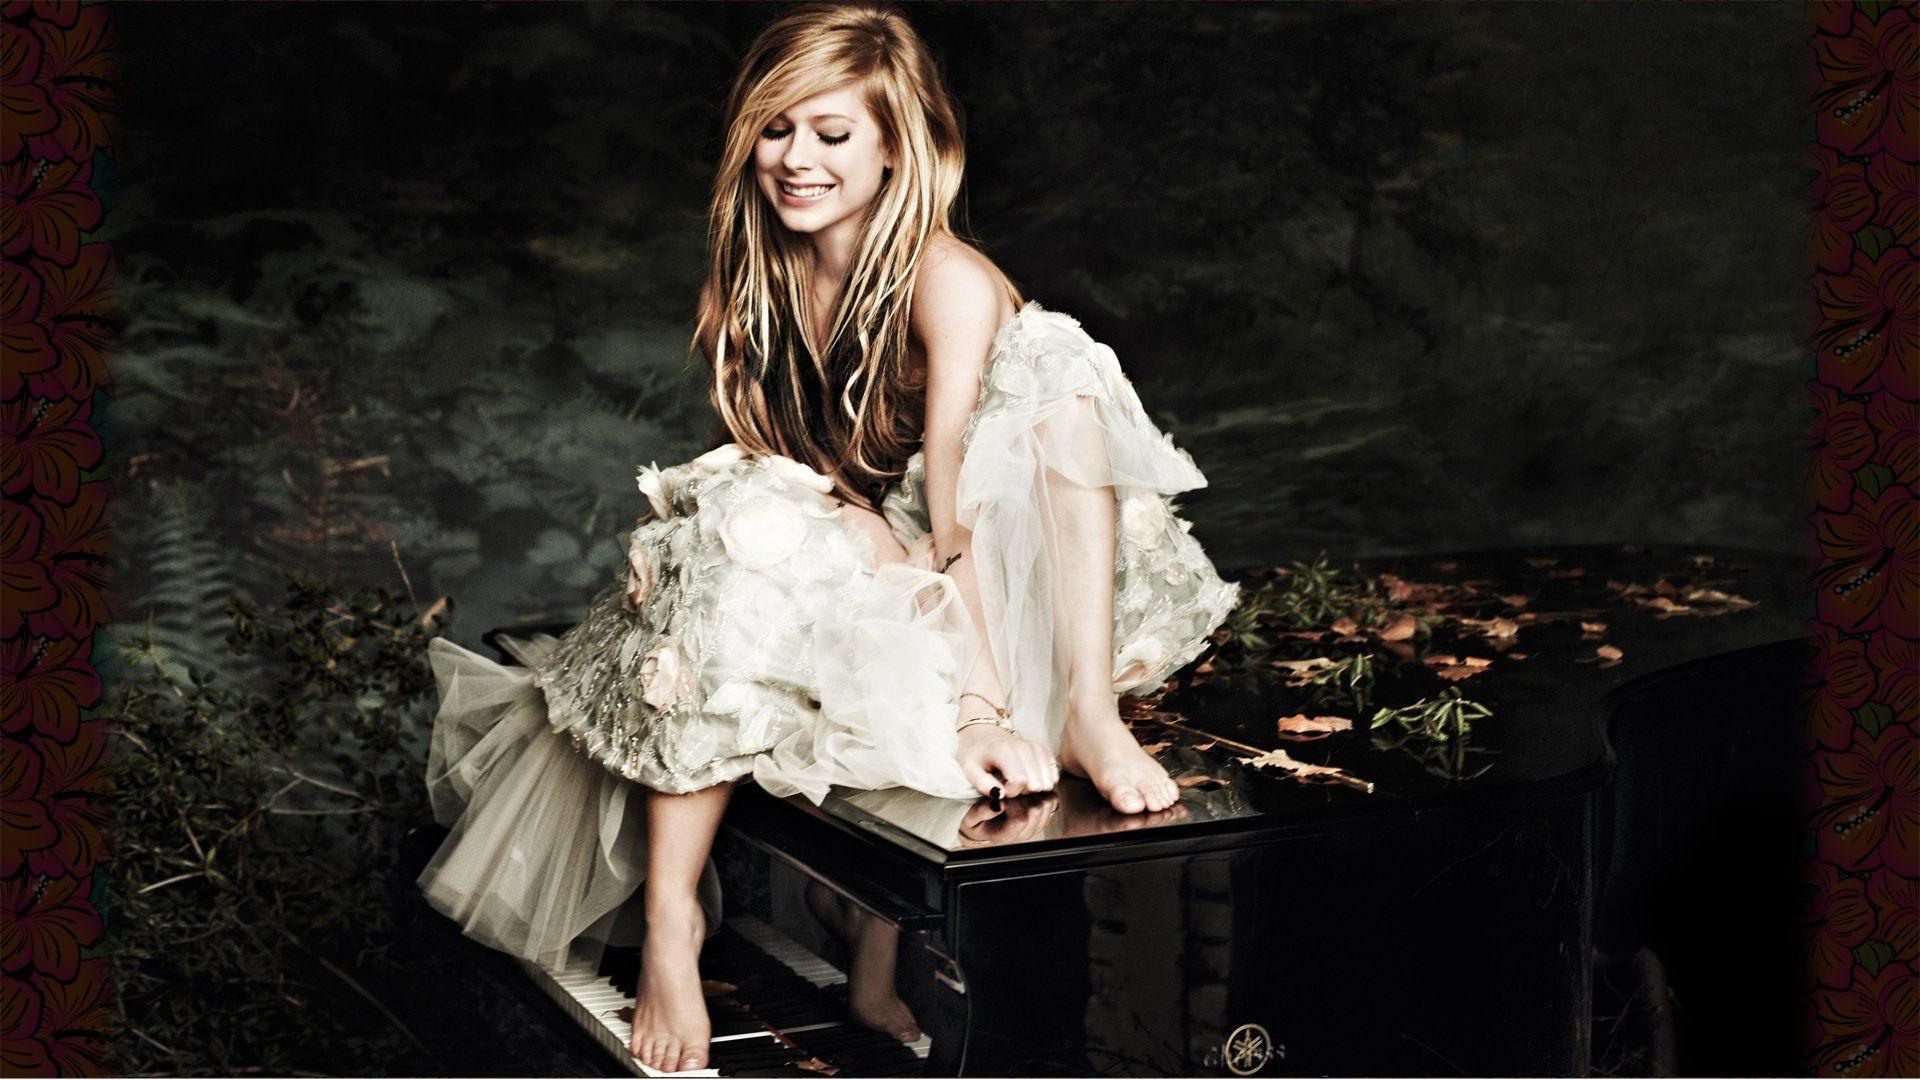 Avril Lavigne Wish You Were Here Wallpapers 299289